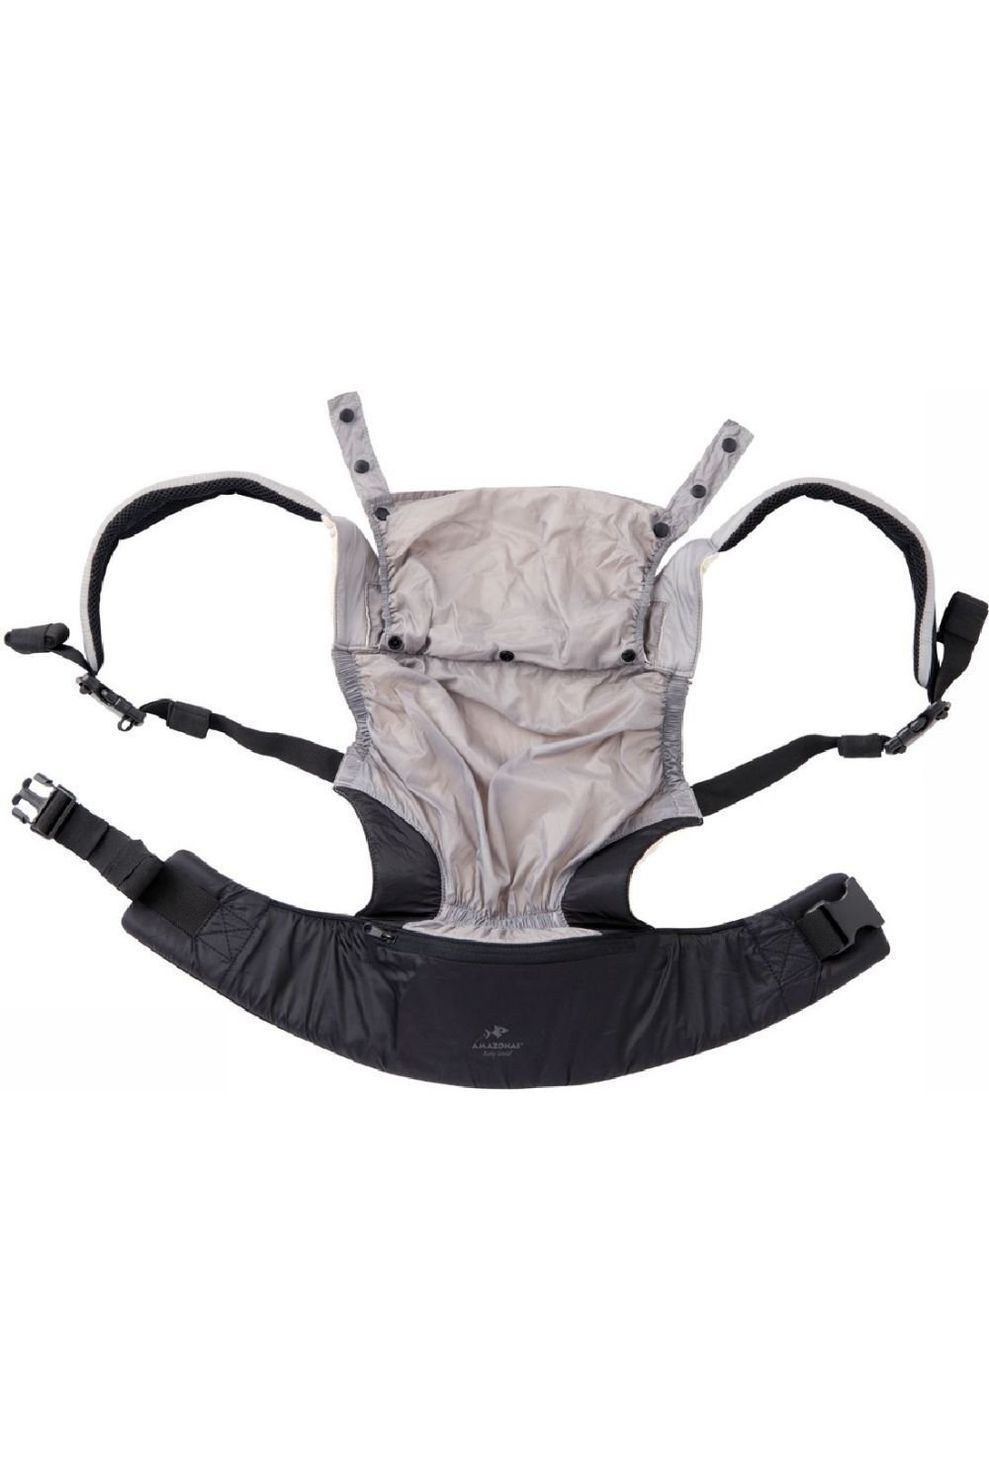 Amazonas Babydrager Baby Smart Carrier Ultra-Light - Grijs